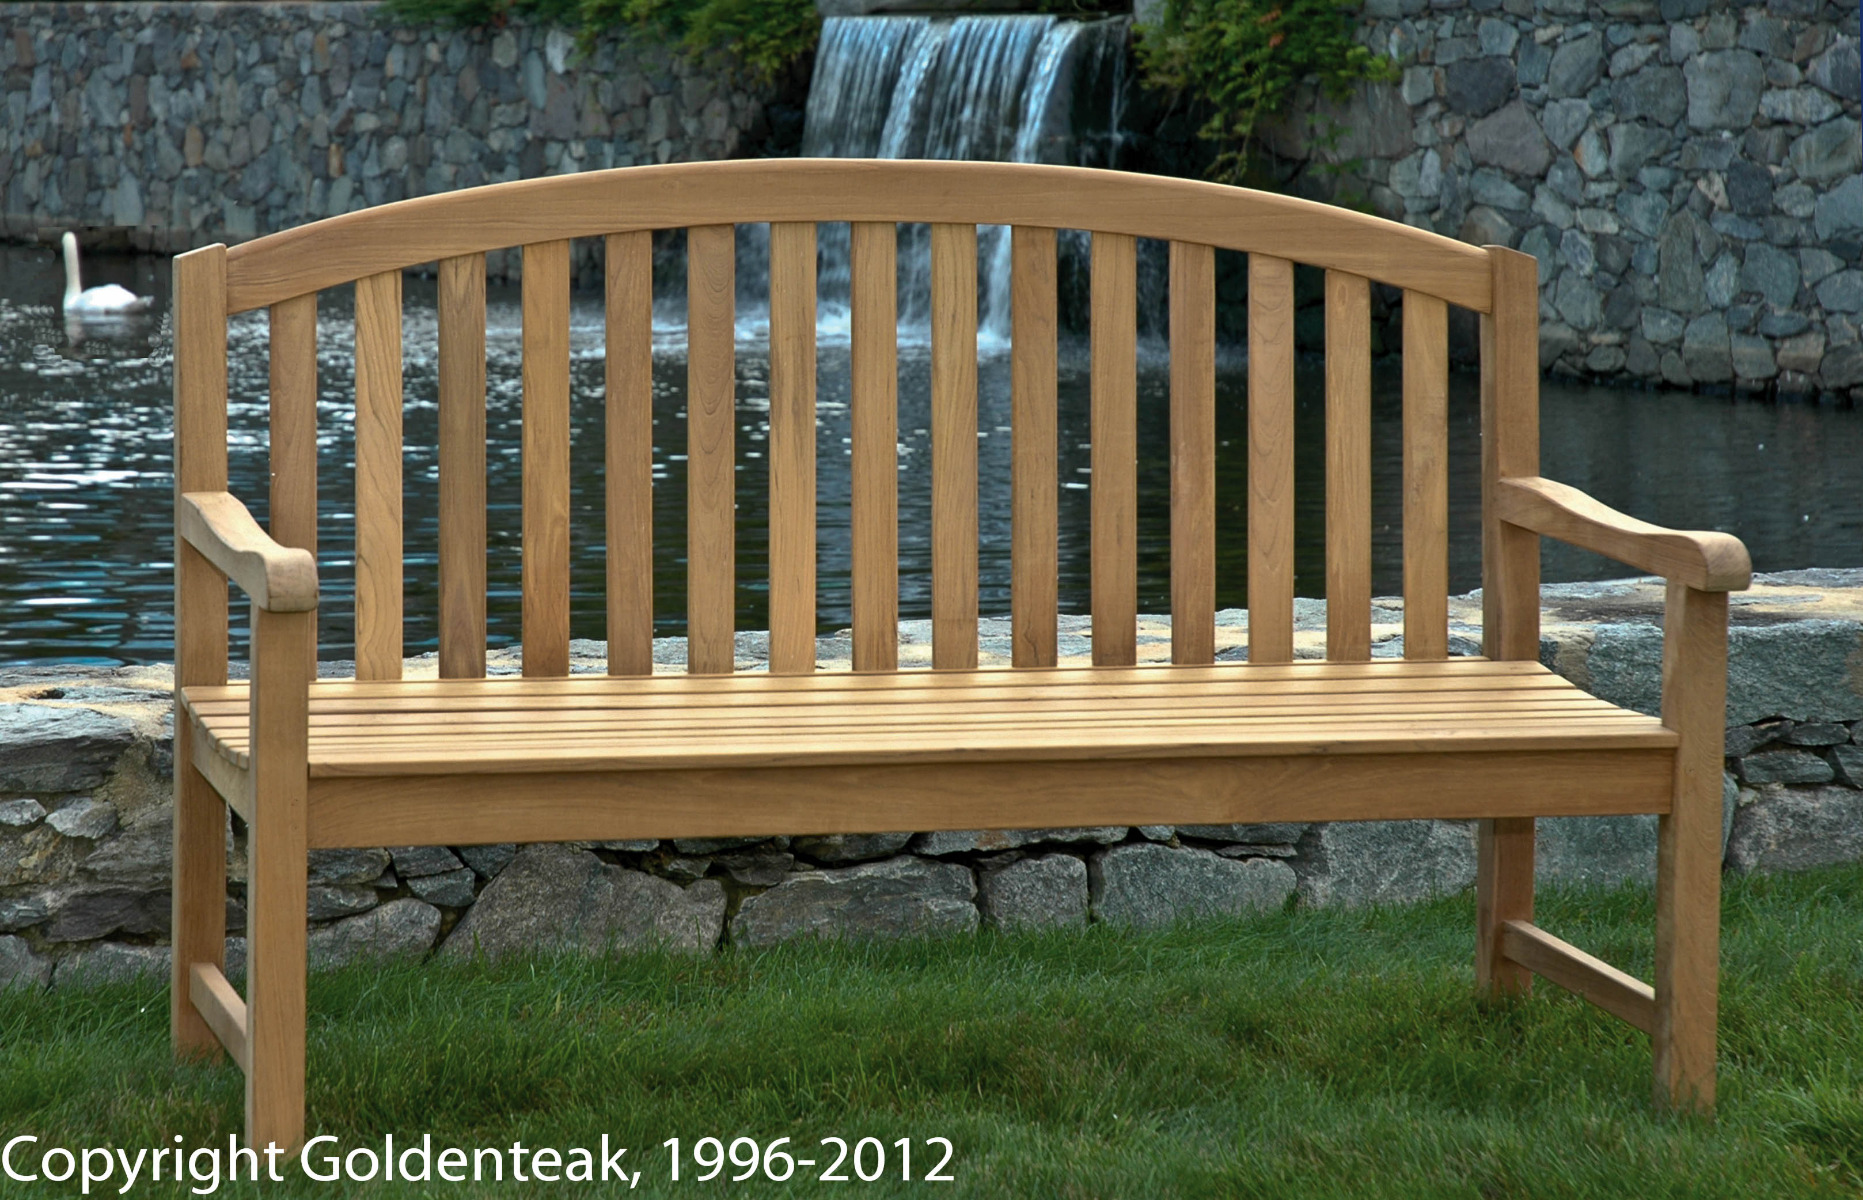 Goldenteak Teak Patio Furniture Quality